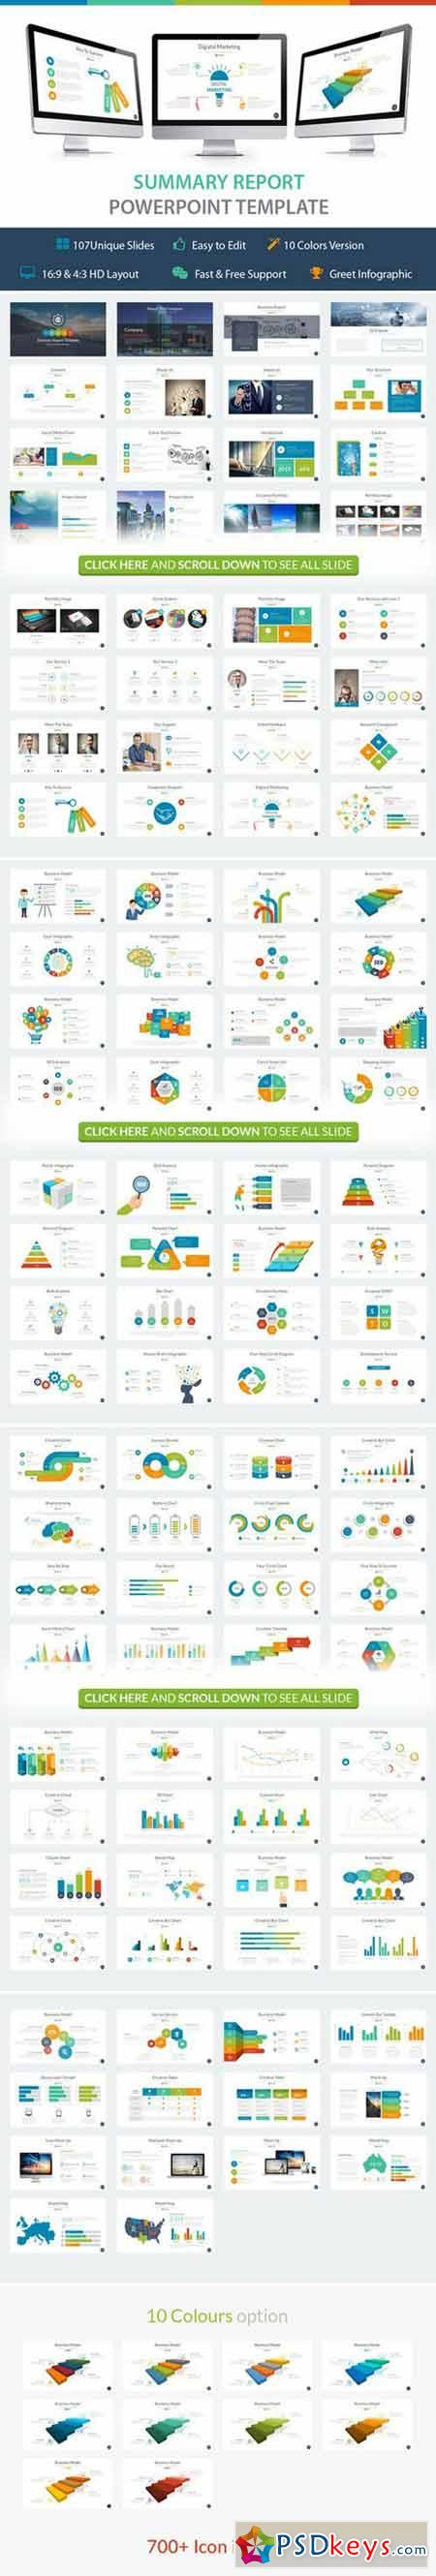 Summary Powerpoint Template 422051